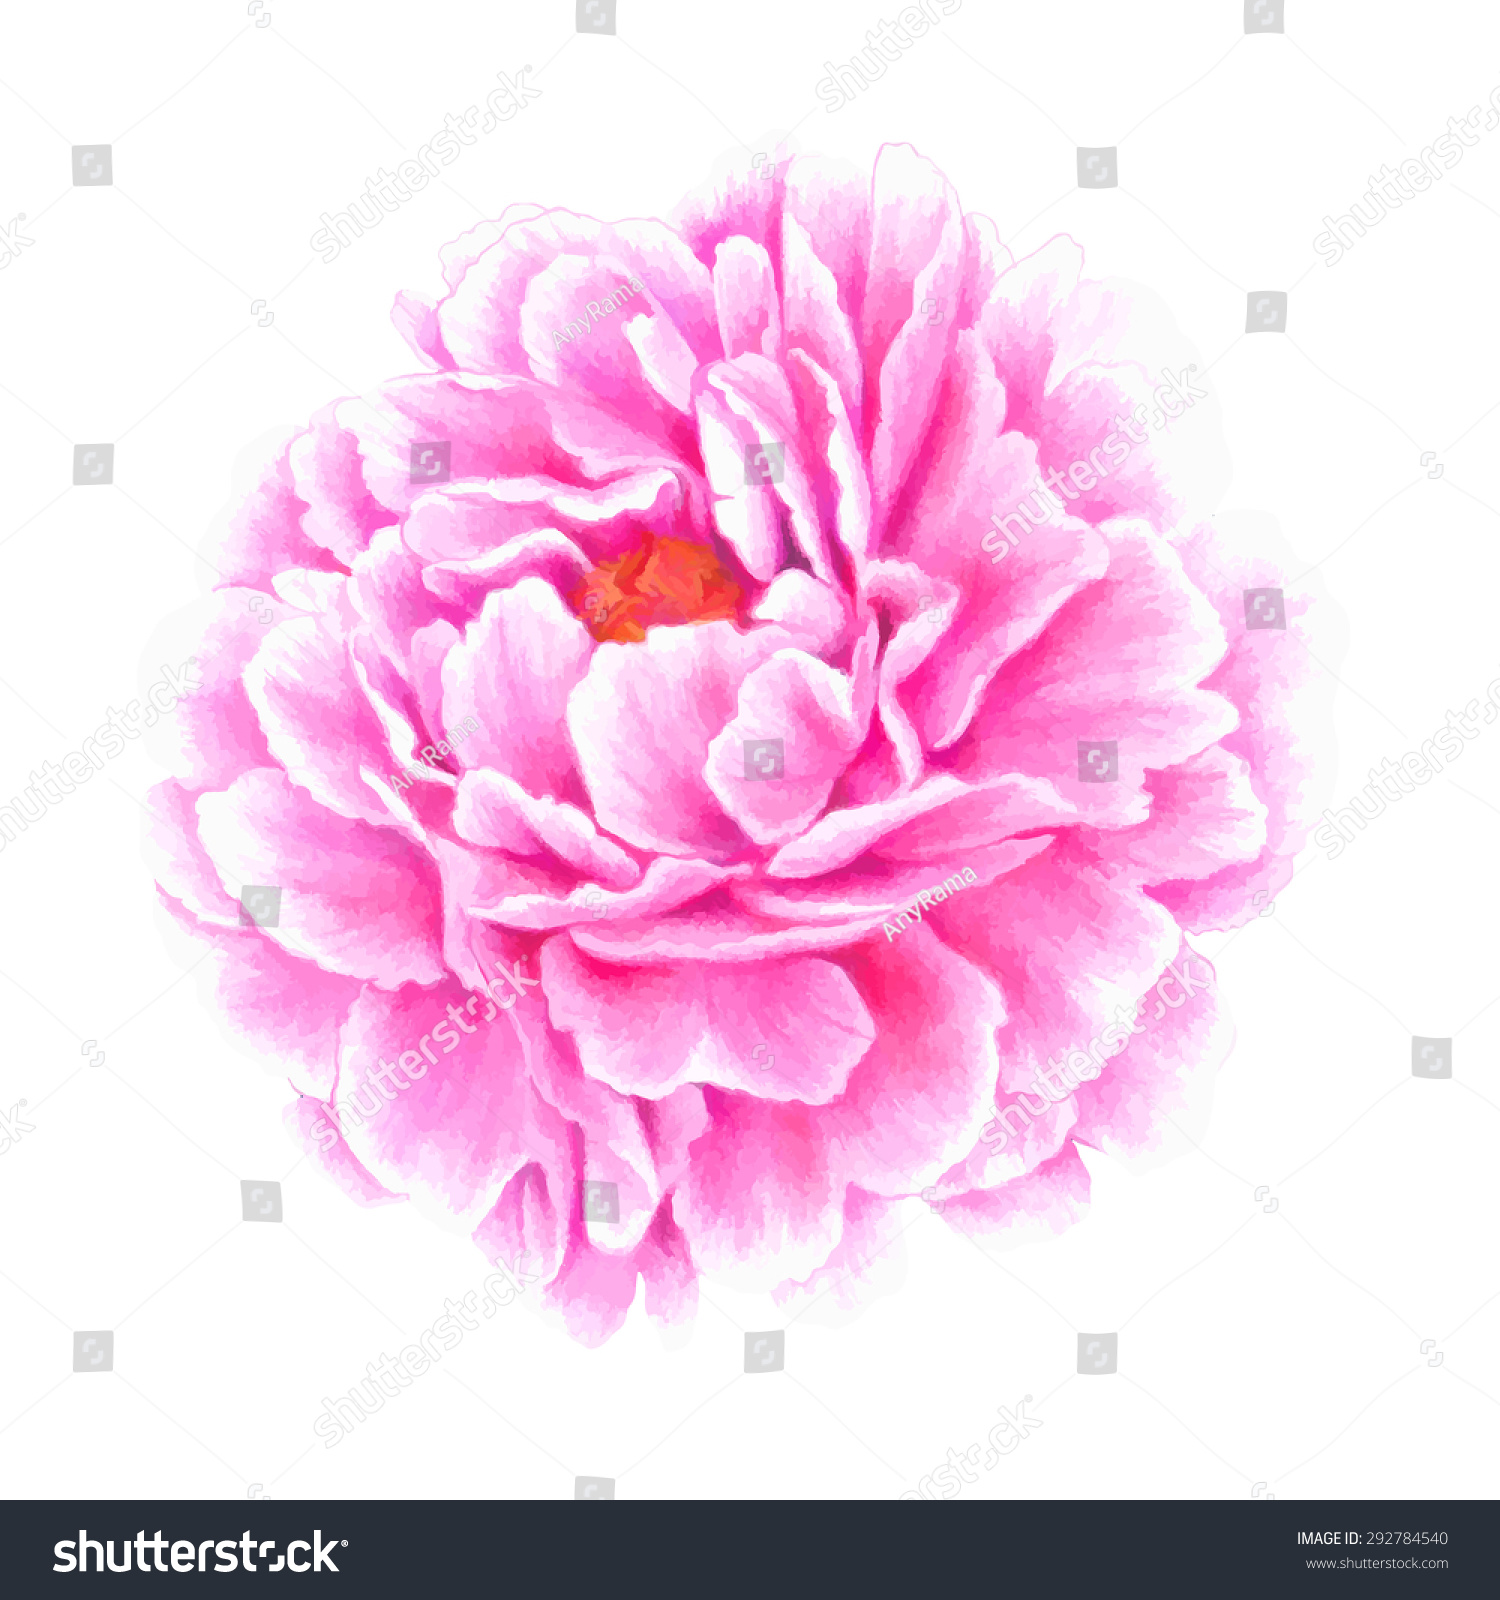 Peony flower isolated on white stock vector 368014568 shutterstock - Peony Flower Stock Images Royalty Free Images Vectors